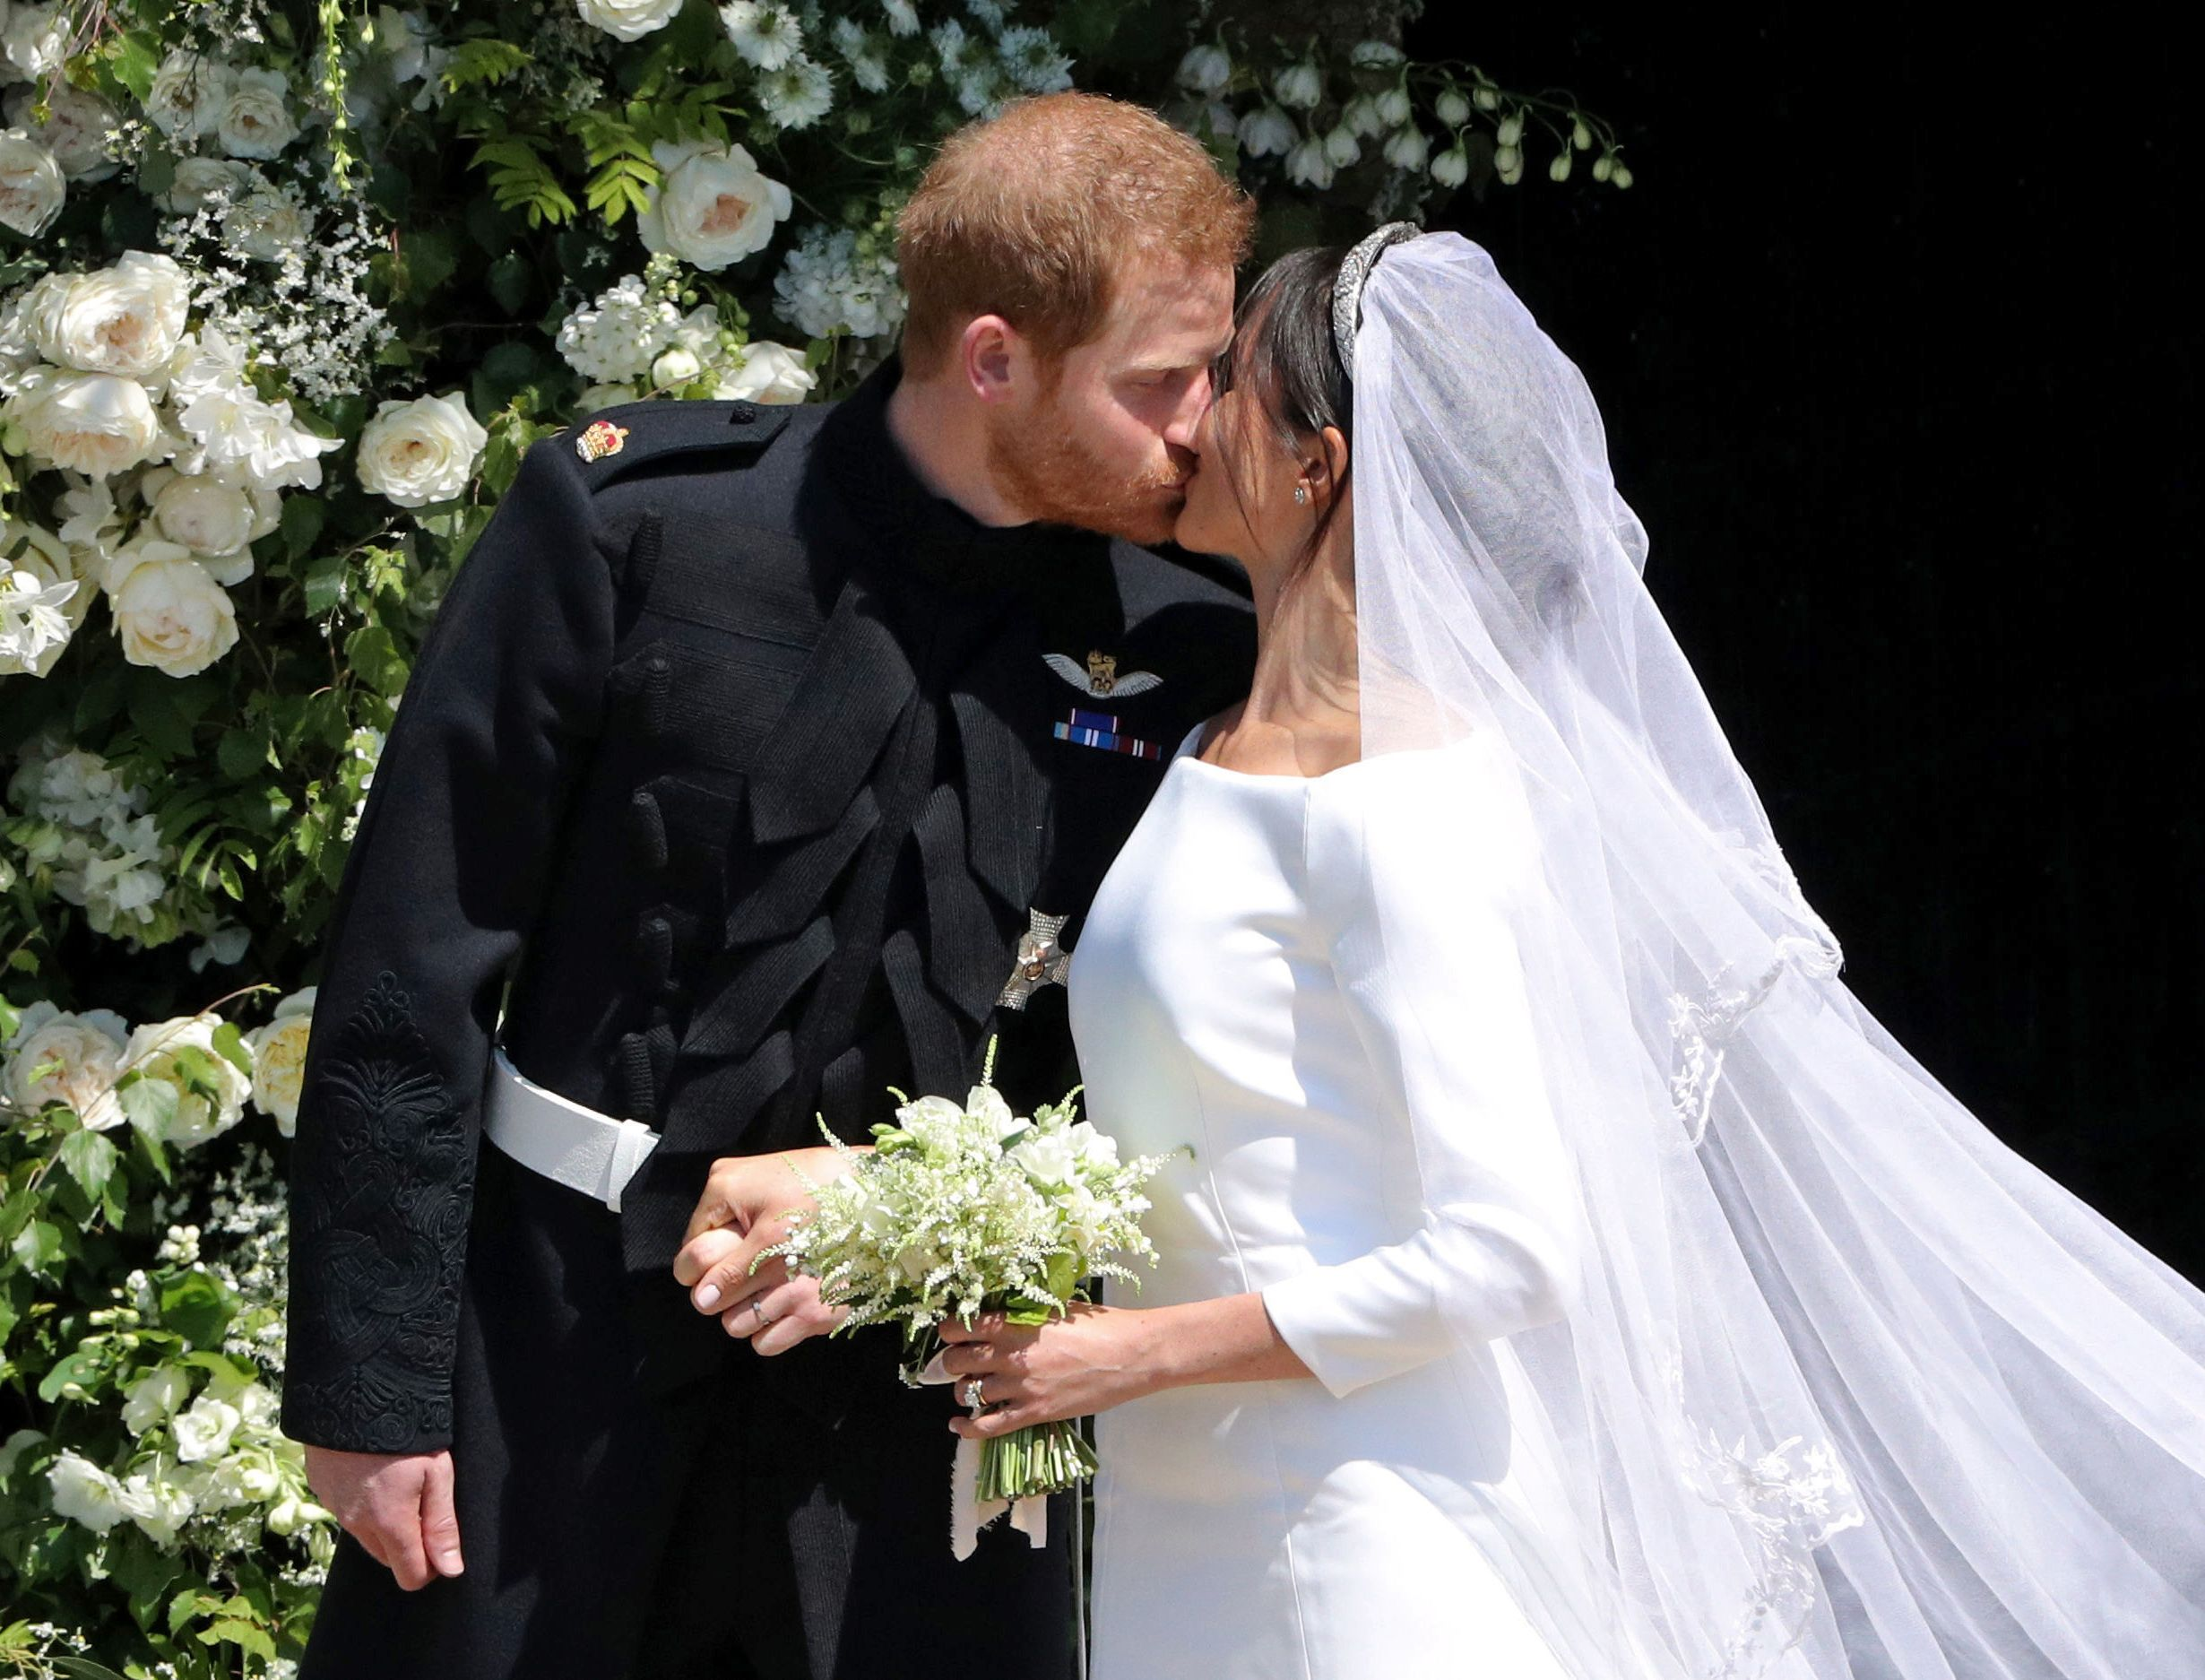 meghan markle prince harry had a no kissing rule during wedding stylecaster https stylecaster com meghan markle prince harry no kissing wedding